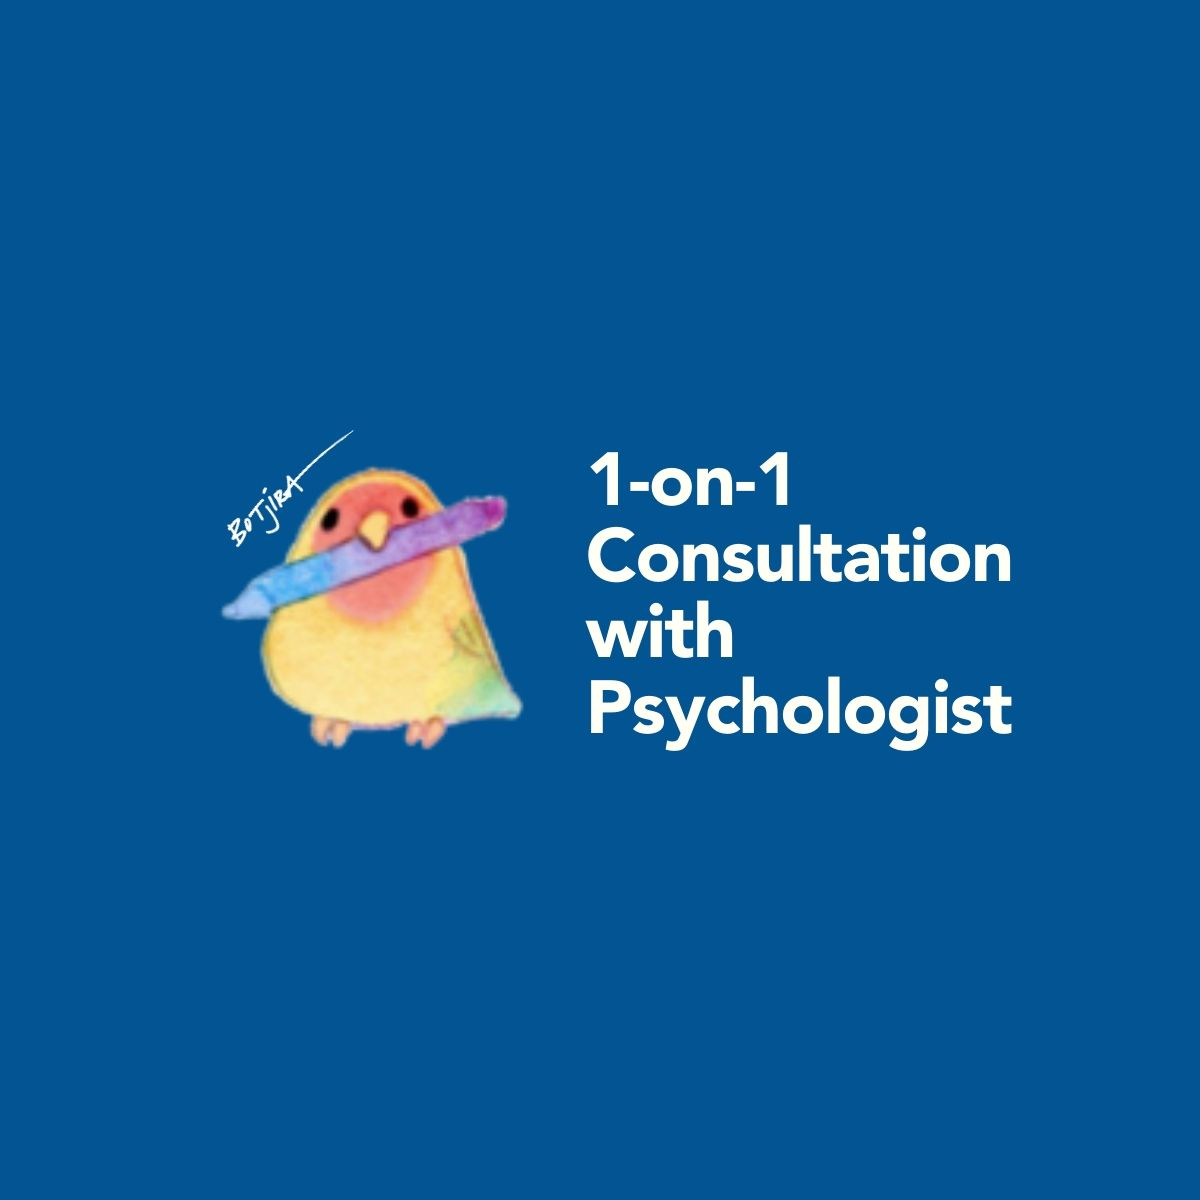 1-on-1 Consultation Psychologist